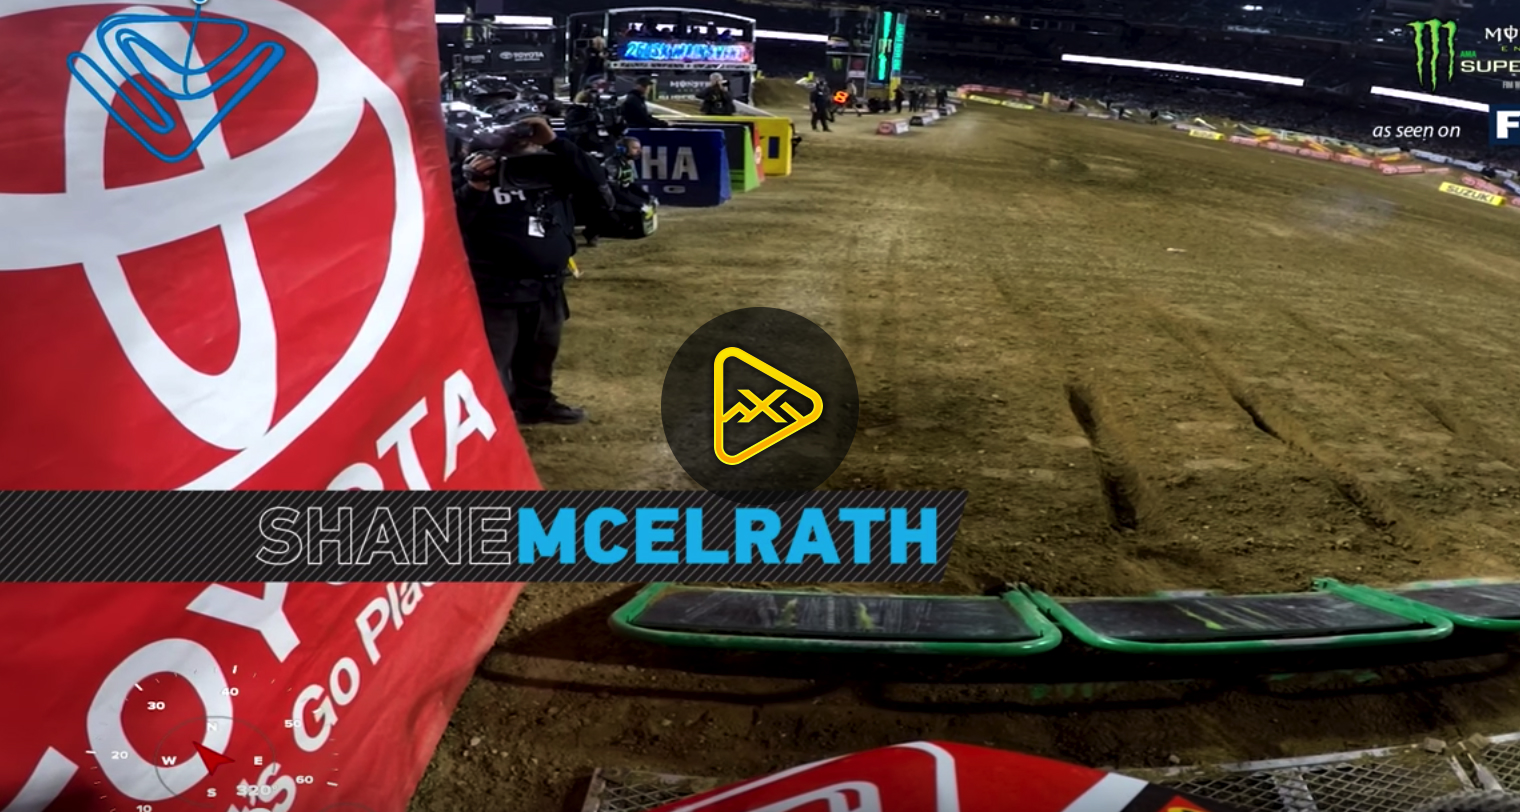 GoPro: Shane McElrath at 2018 San Diego SX